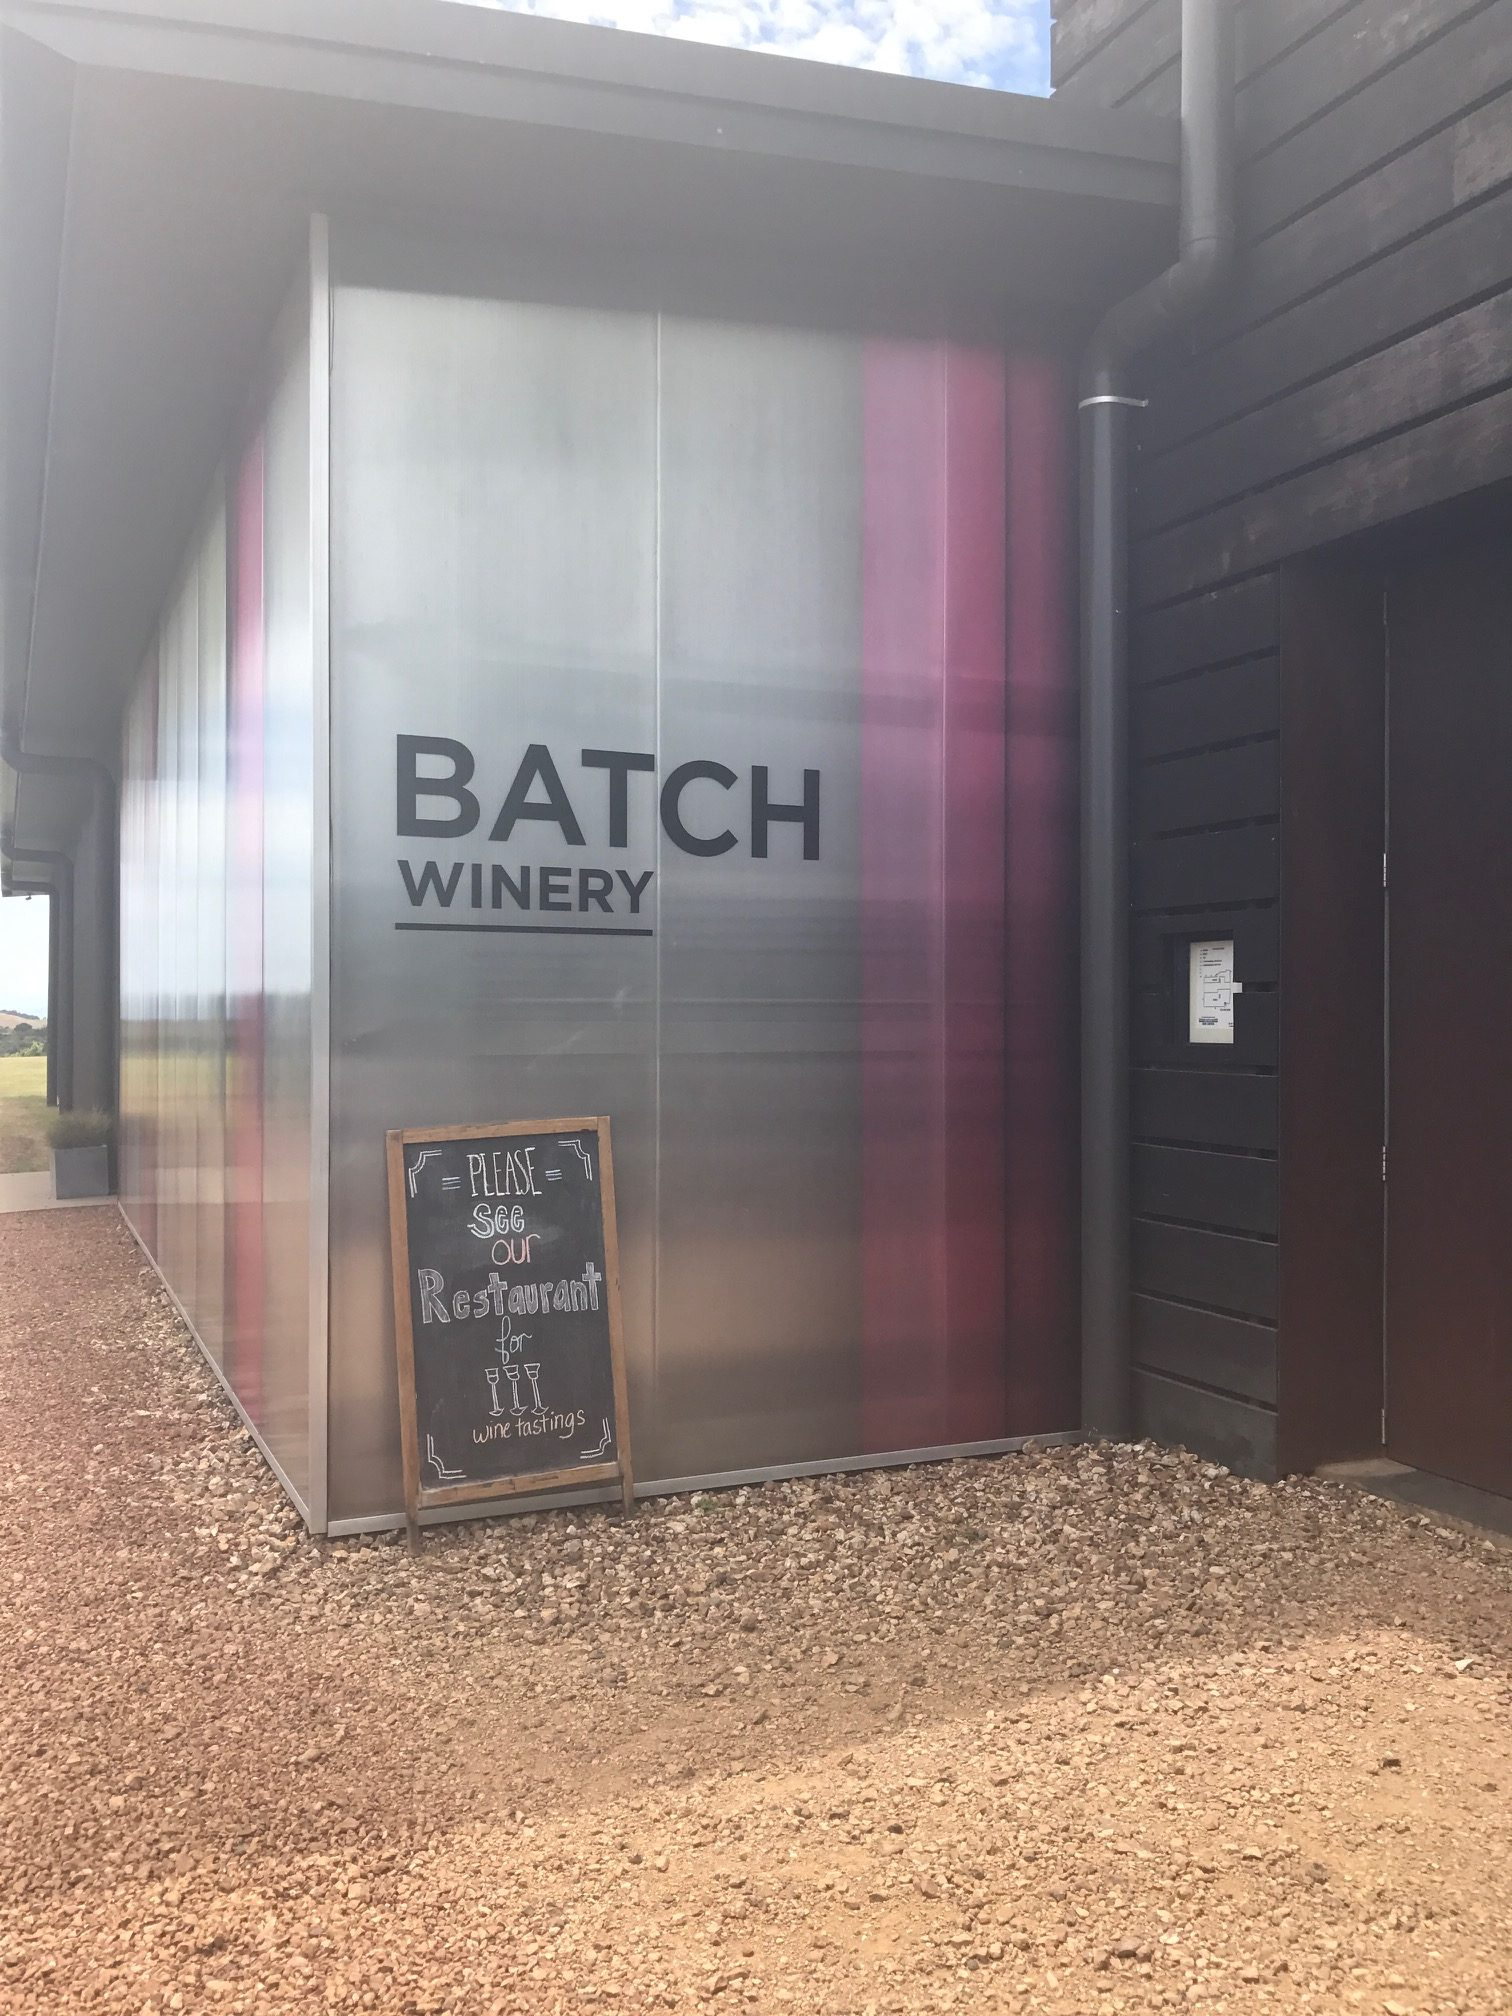 Batch Winery Waiheke Island